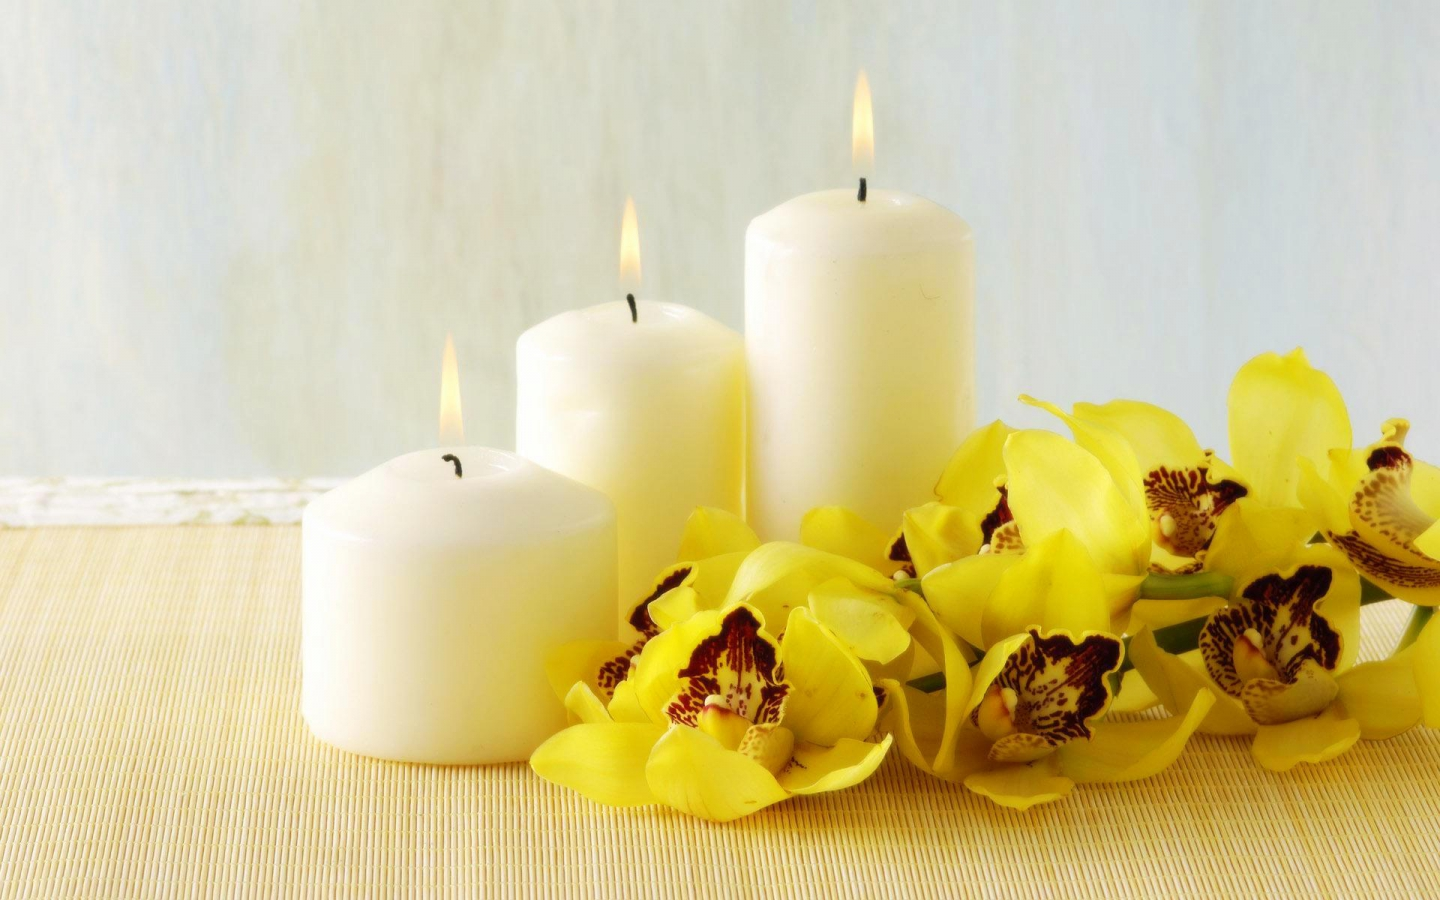 Flowers images Orchid And Candles HD wallpaper and background photos